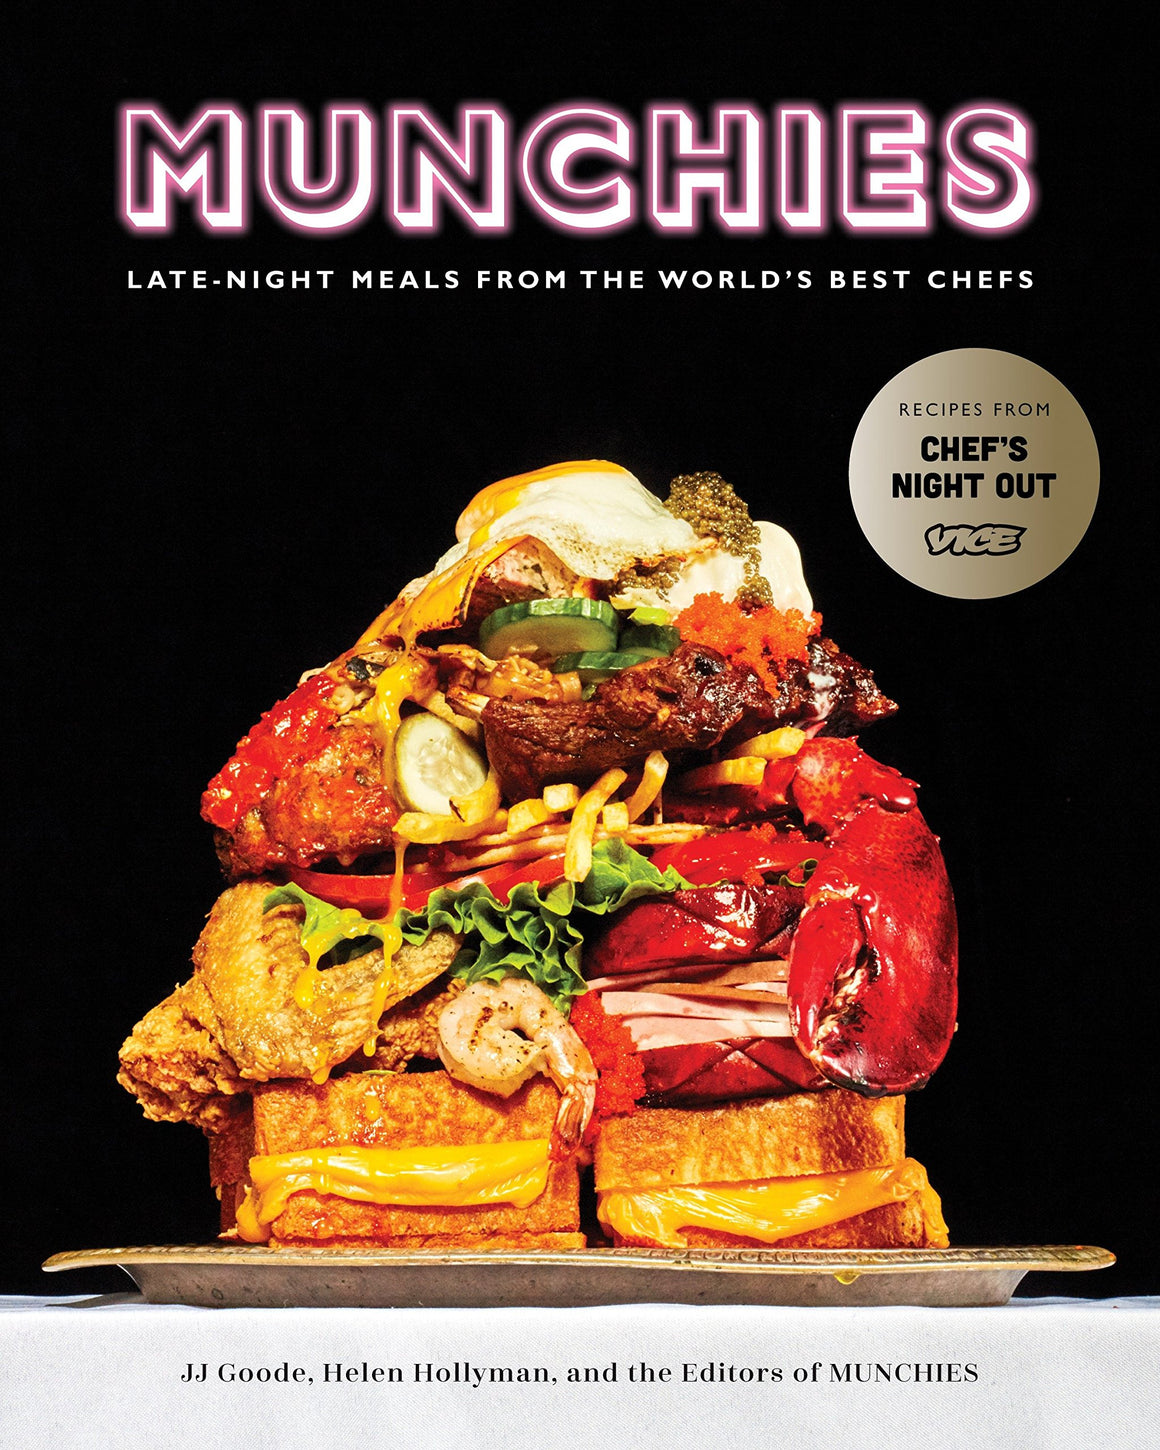 JJ Goode, Helen Hollyman & Editors of MUNCHIES. MUNCHIES: Late-Night Meals from the World's Best Chefs.